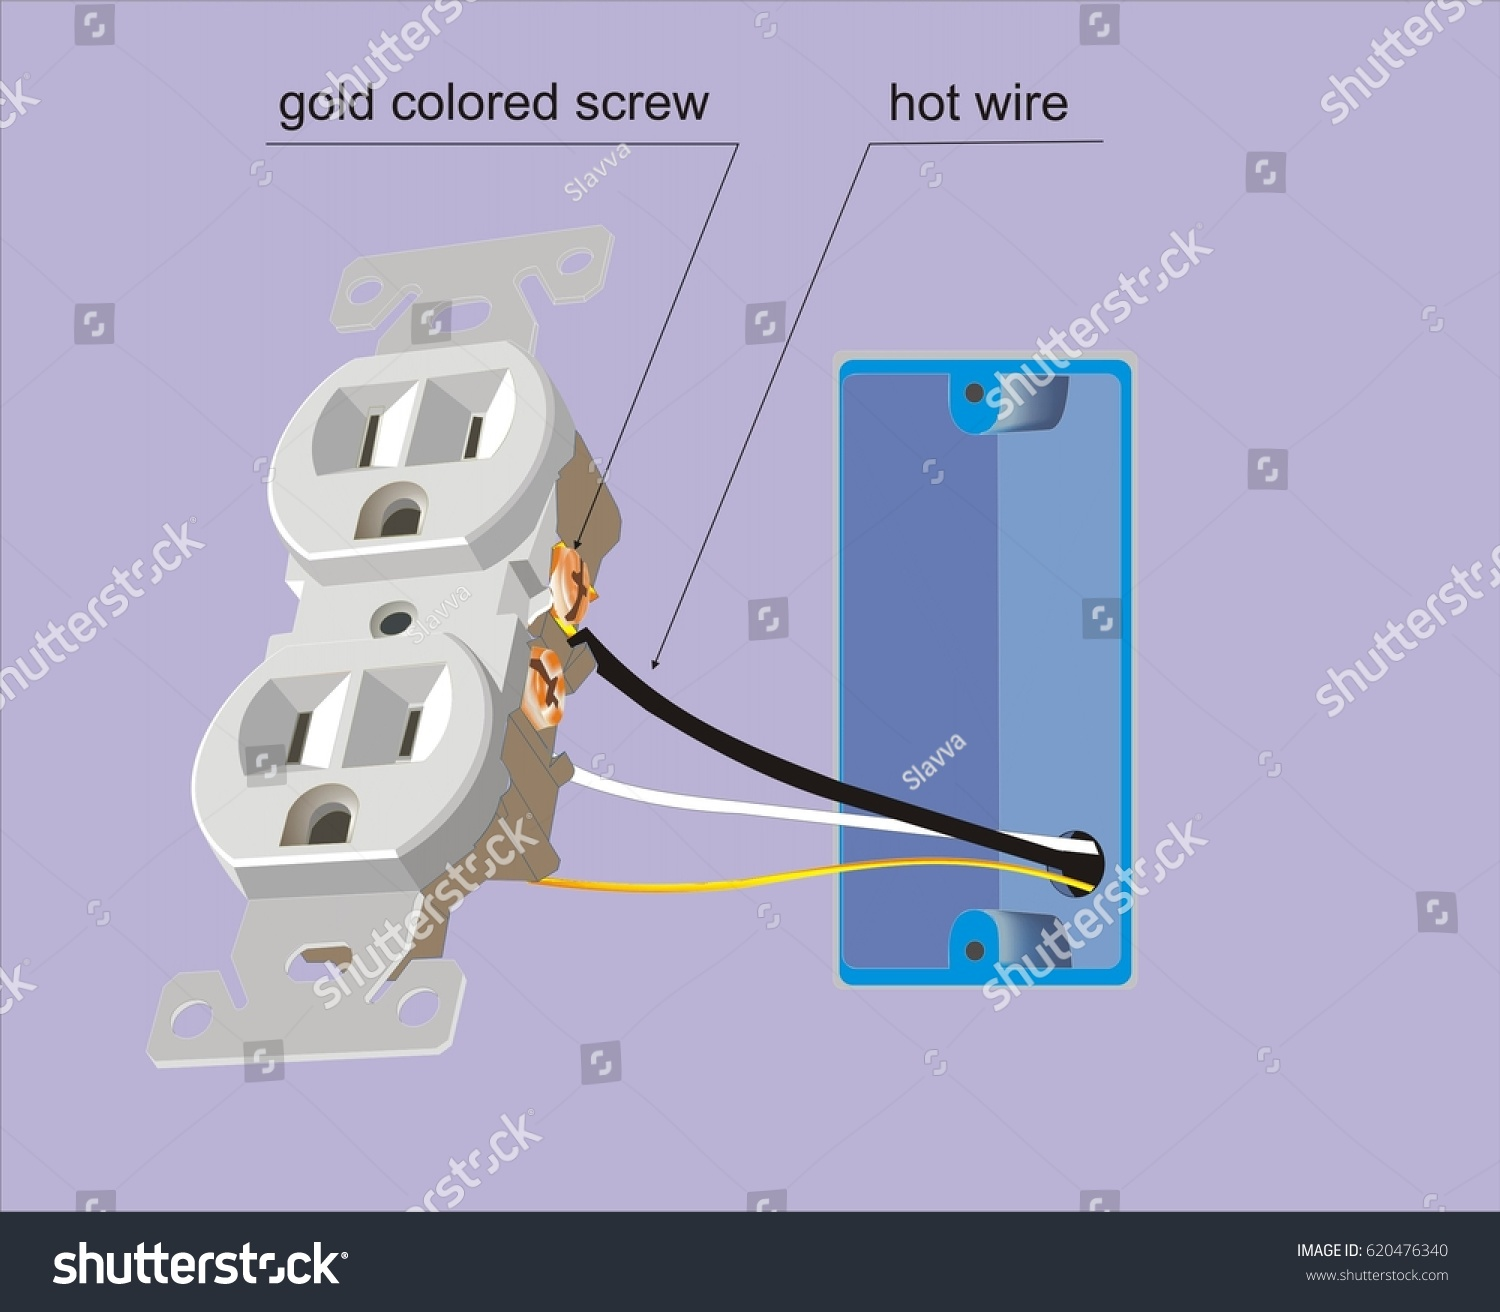 Screws Connect Hot Wires Electrical Outlet Stock Illustration How To Wire Outlets In Series For The